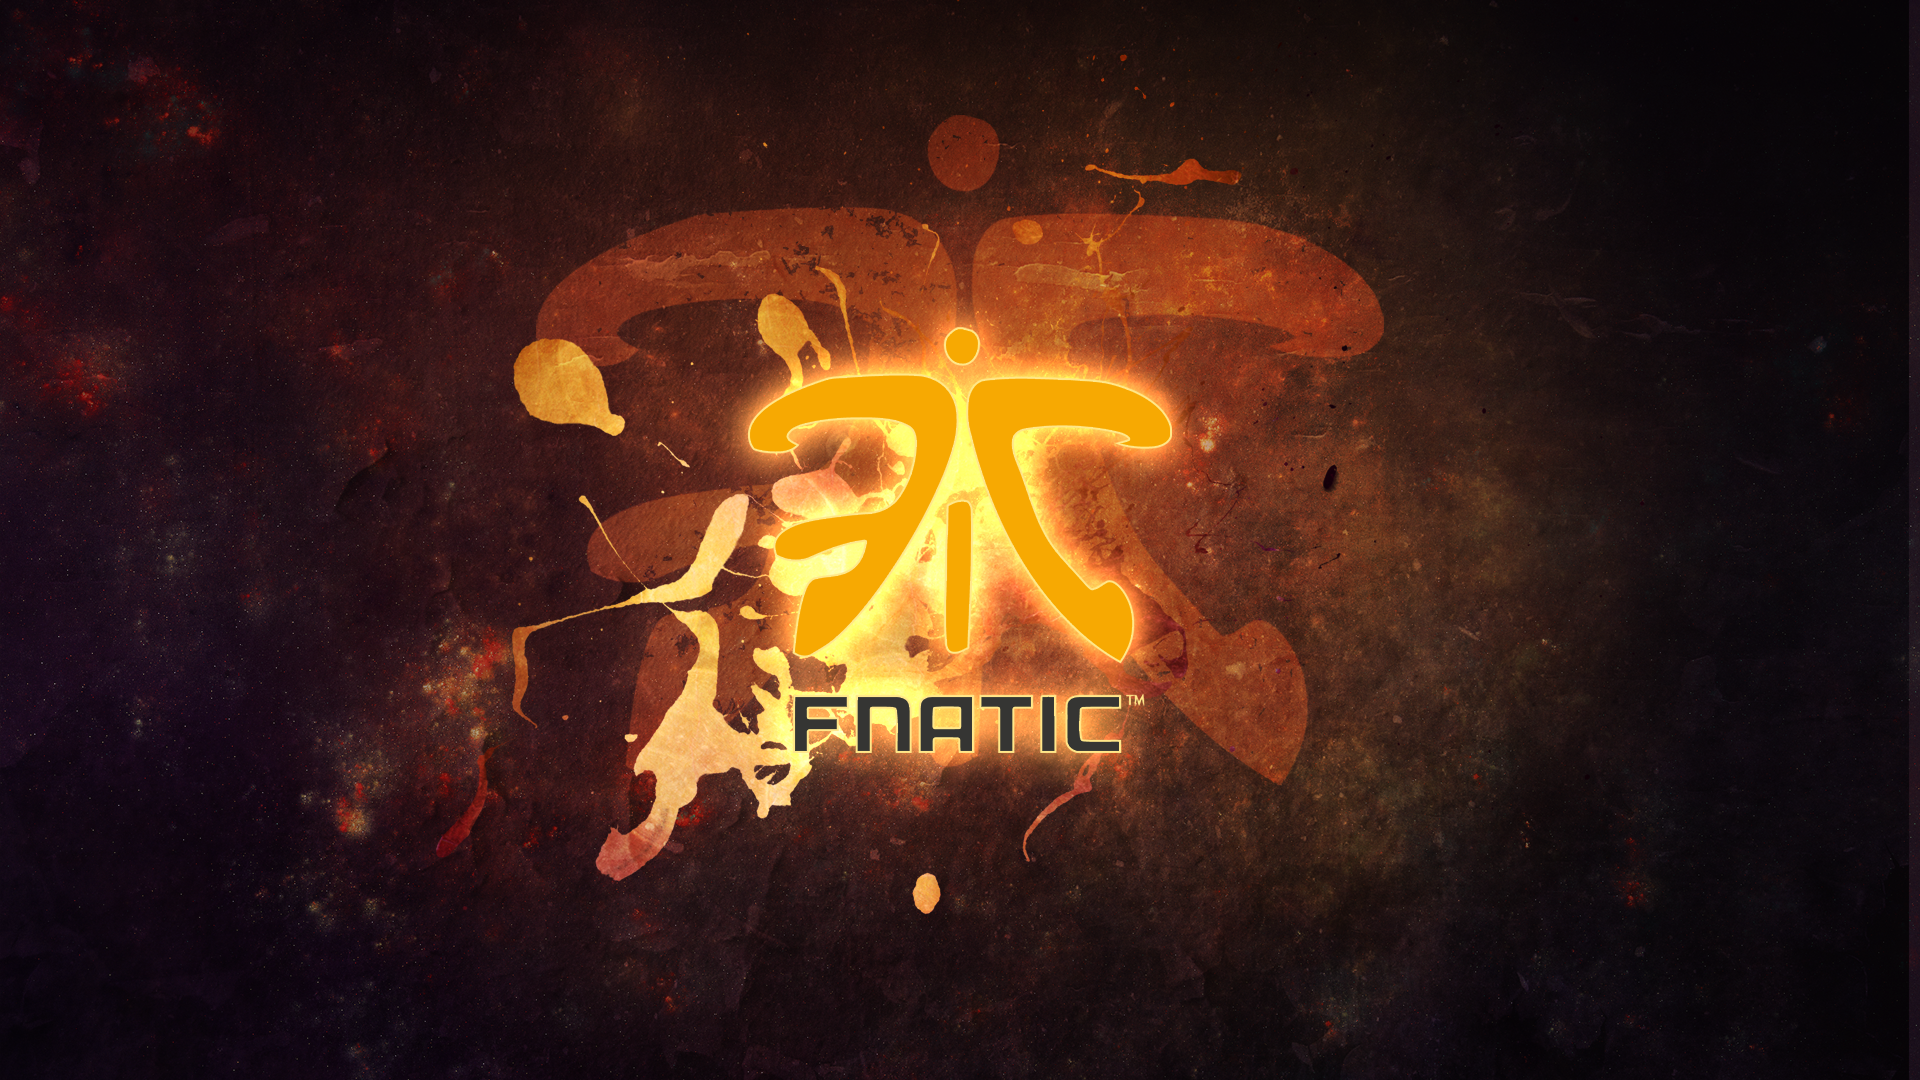 Fnatic wallpaper